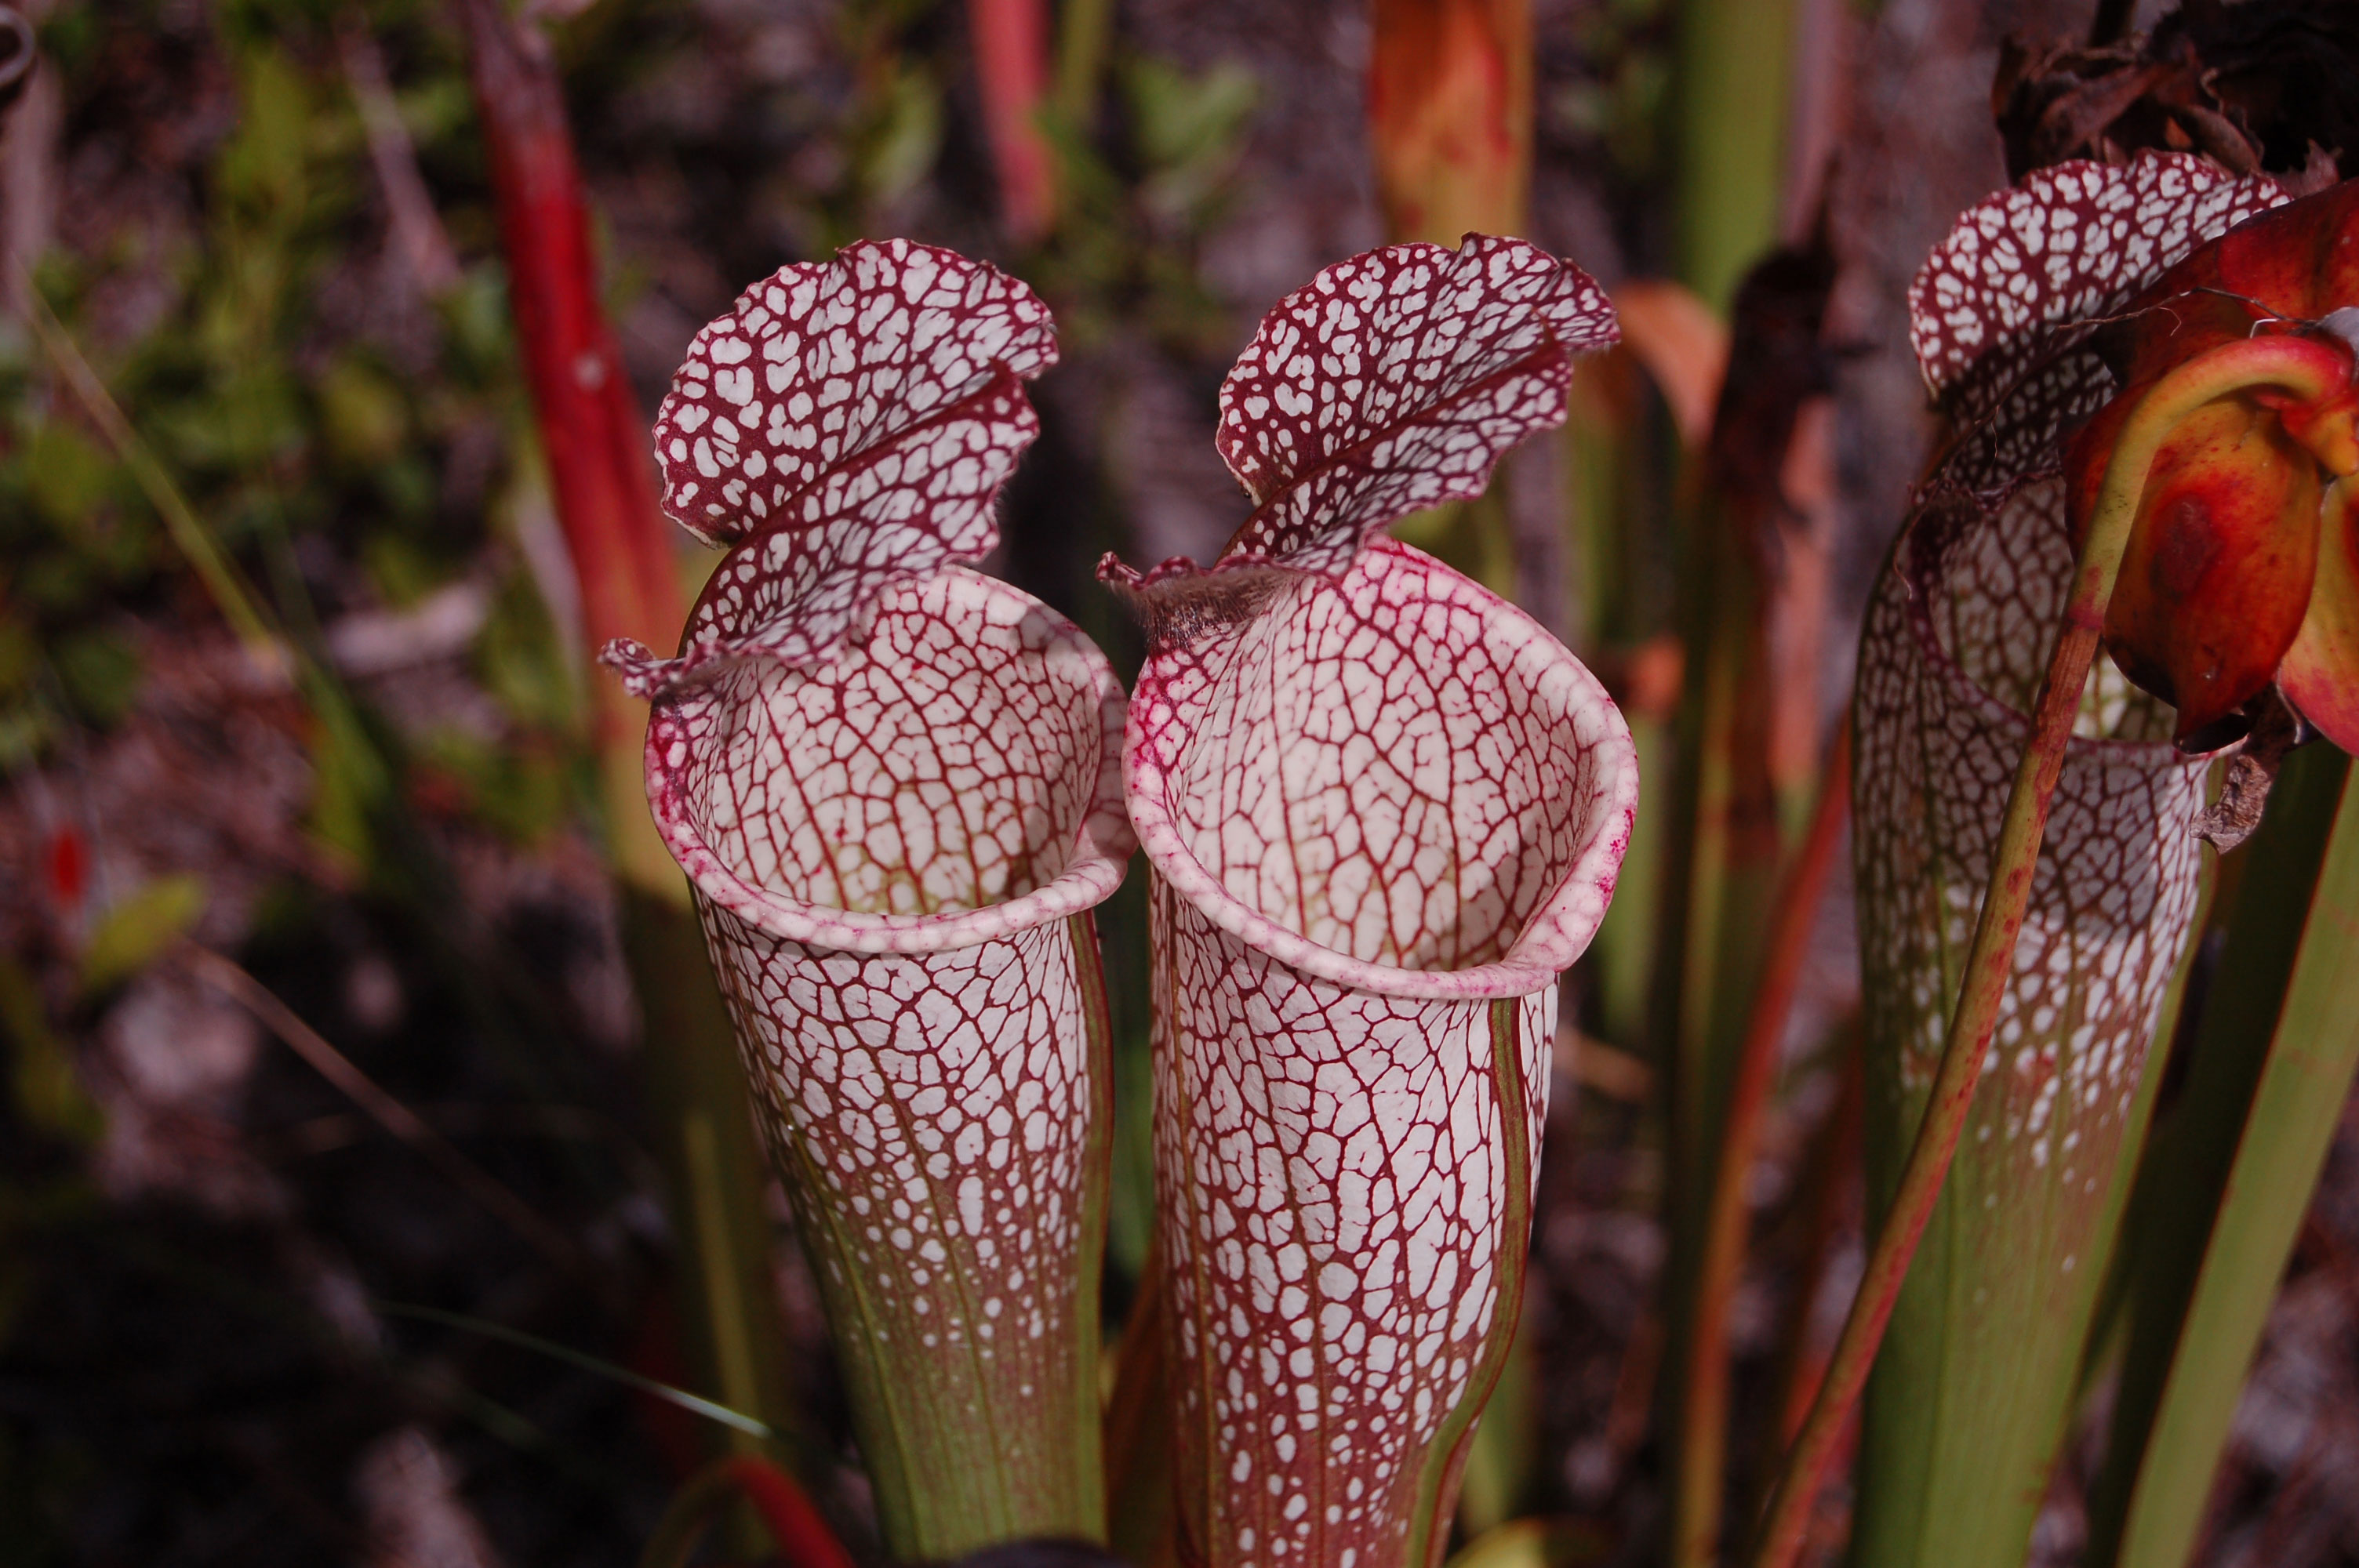 pitcher-plants-stock-photos-nature-flowers-linda-bateman